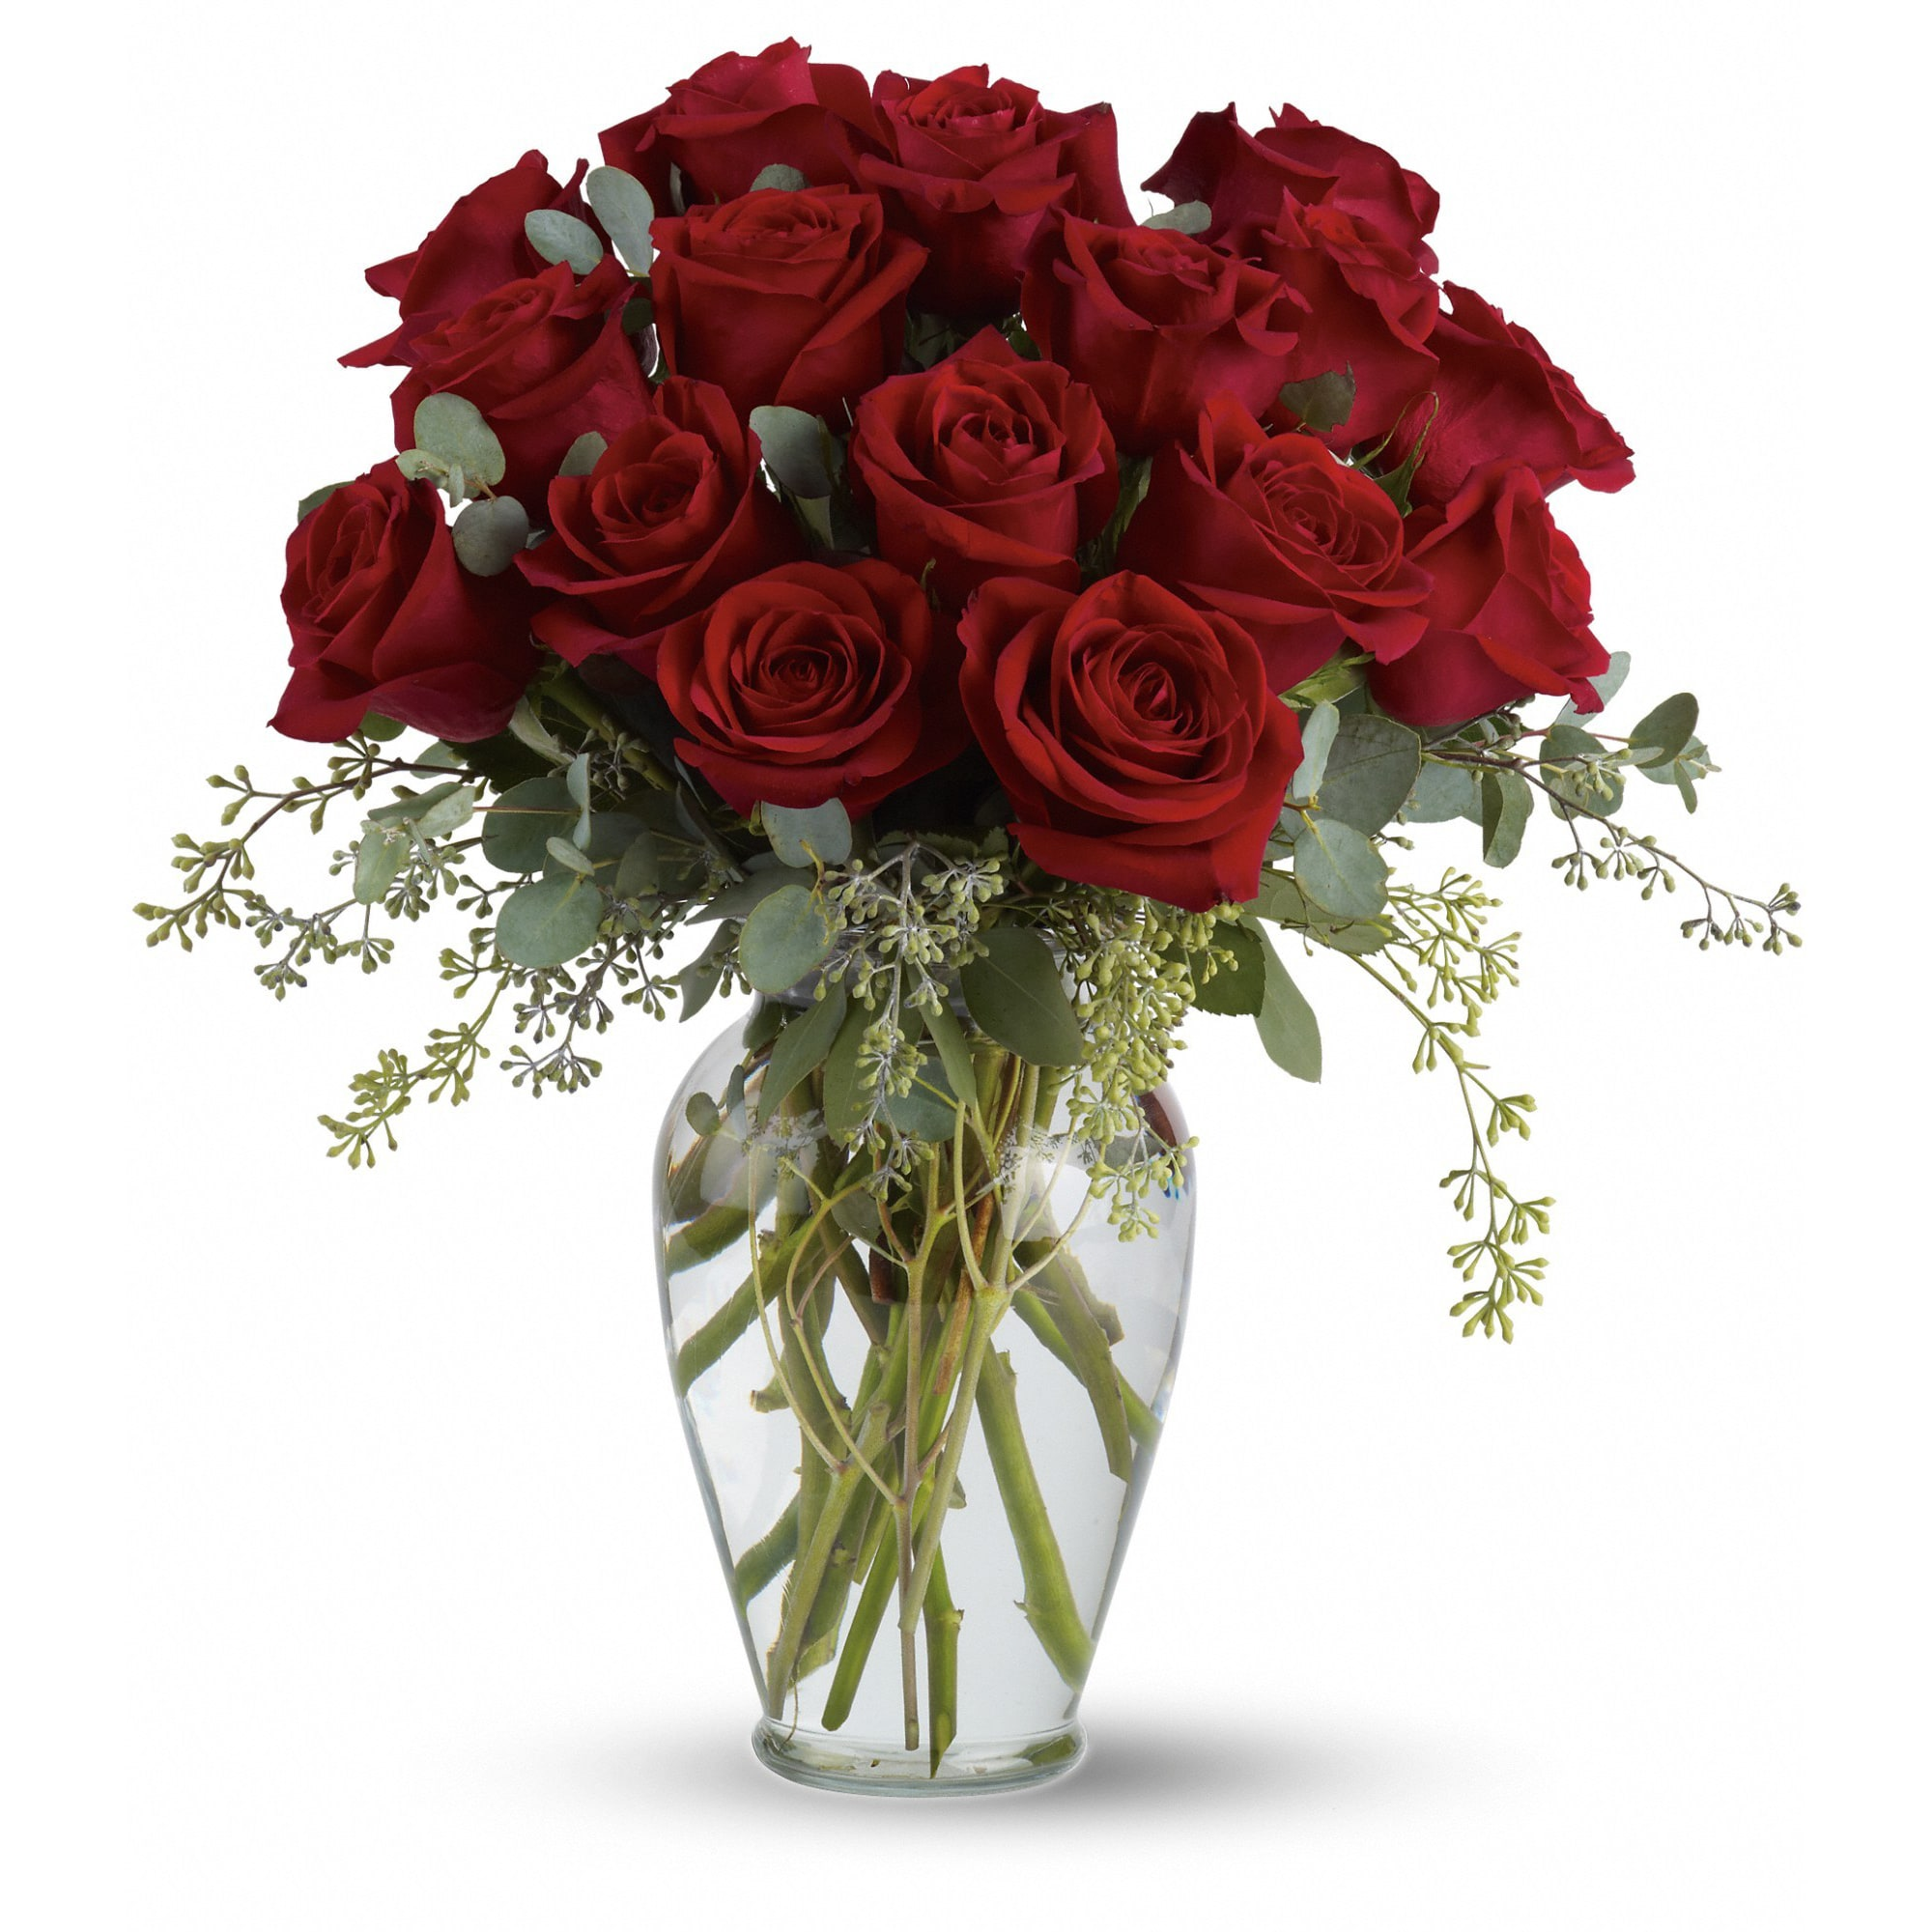 Full Heart 16 Premium Red Roses By Teleflora In Wickenburg Az Crissman S Flower Barn